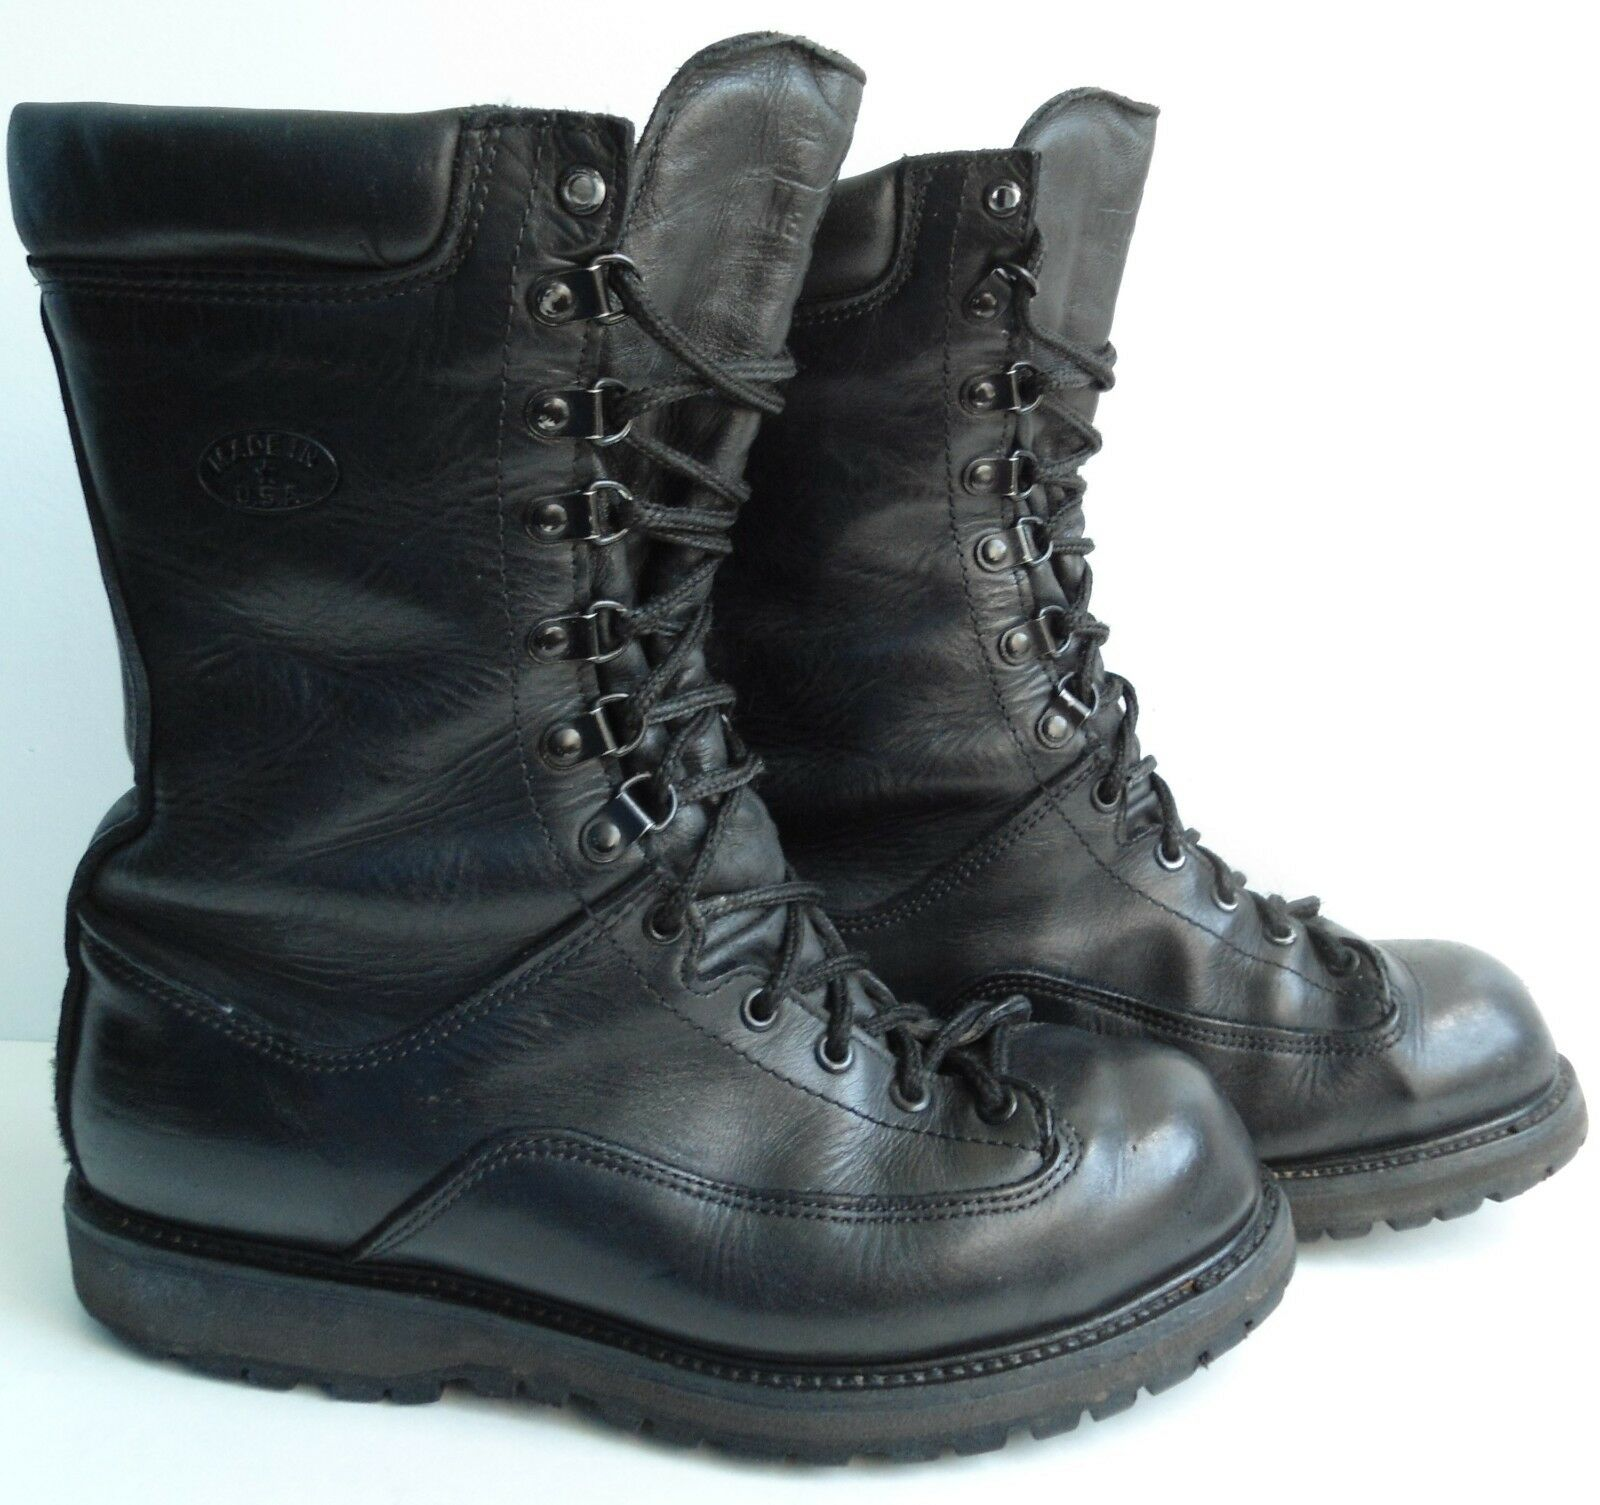 Matterhorn 1949 Black Leather Insulated Military Boots P14005 Men's Sz 9.5 M